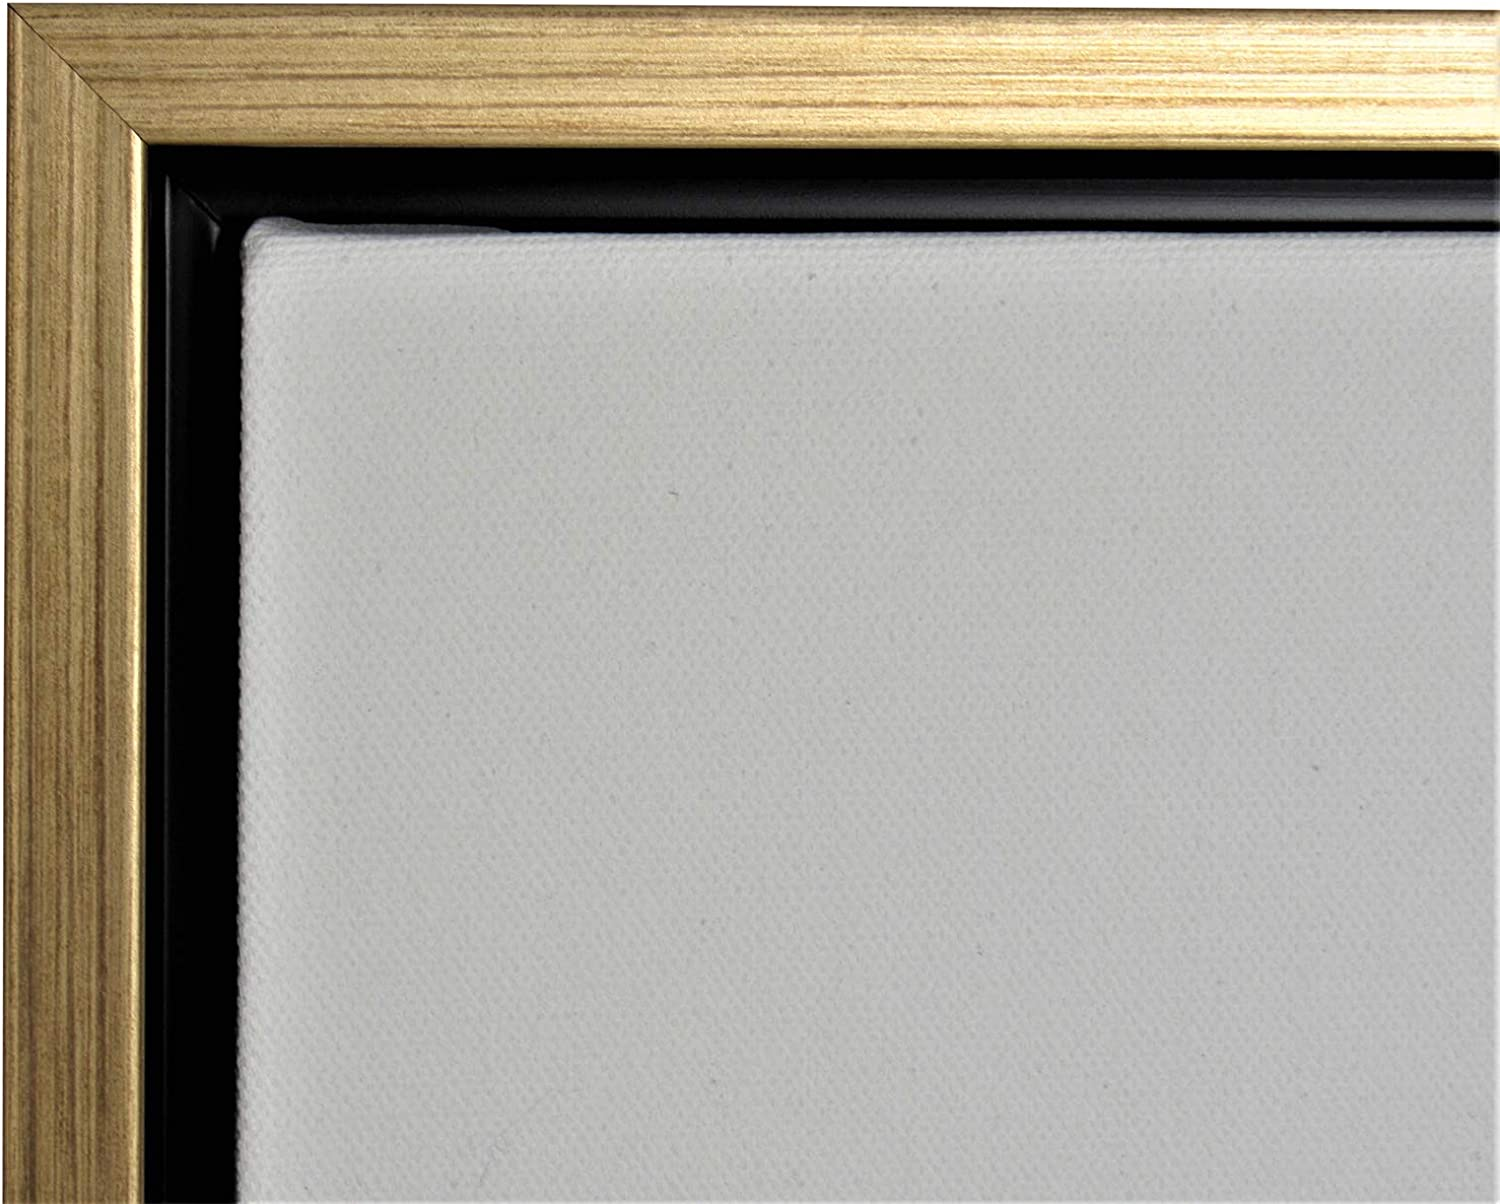 Amazon Com Gold Floater Picture Frame 1 3 8 Deep For 3 4 Canvas Different Sizes 8x10